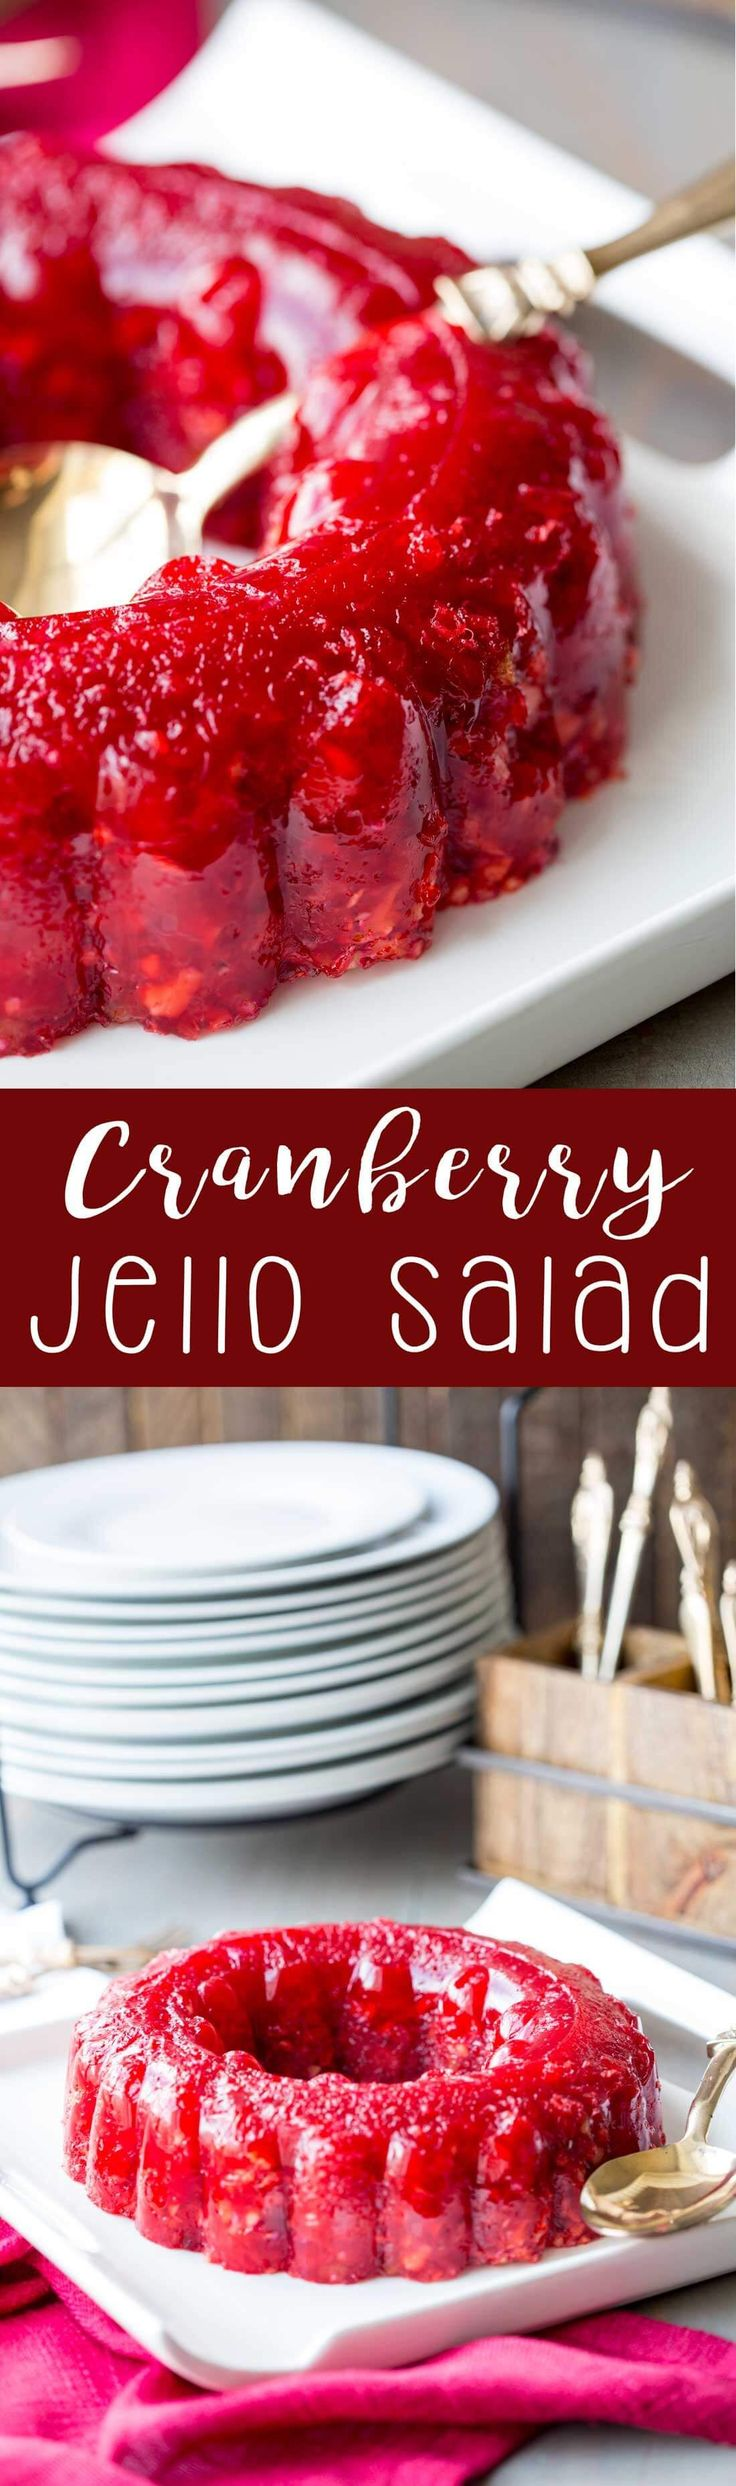 Cranberry Jello Salad - a blast from my past recipe. Can't wait to try it this Thanksgiving!